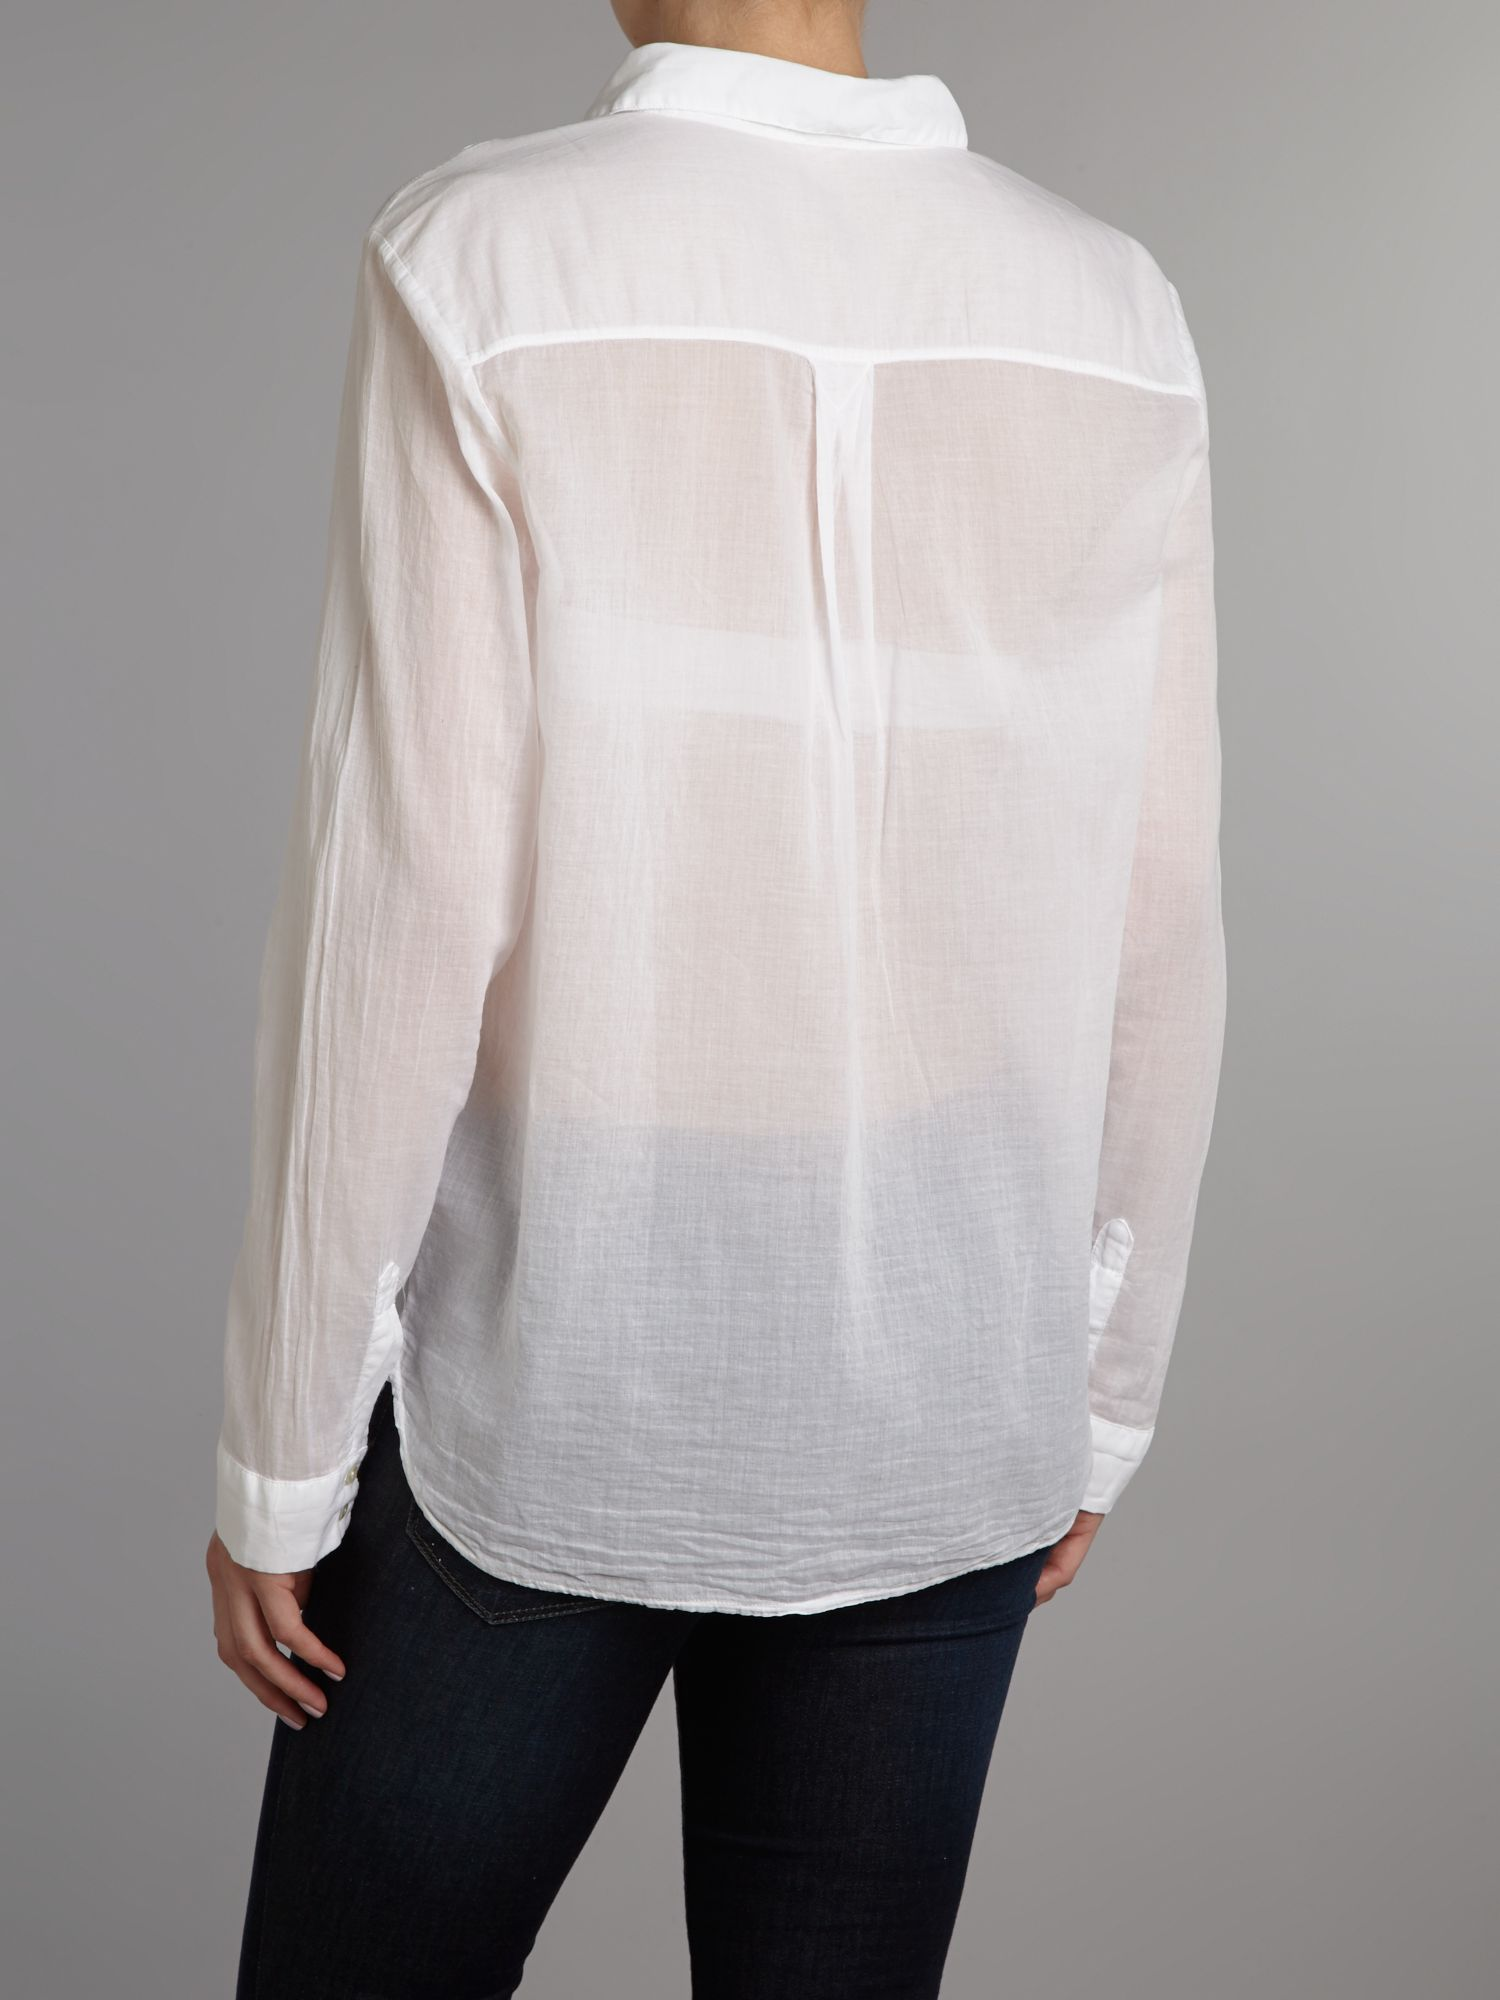 Whistles freya soft cotton shirt in white lyst for Soft cotton dress shirts